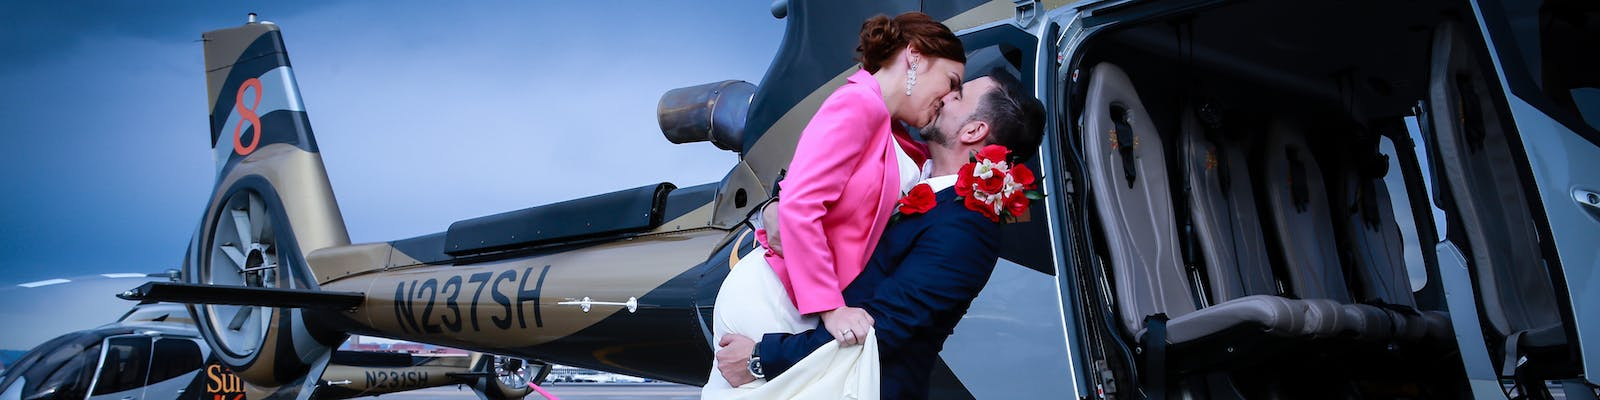 Groom embraces his wife in front of the helicopter wedding in Vegas.